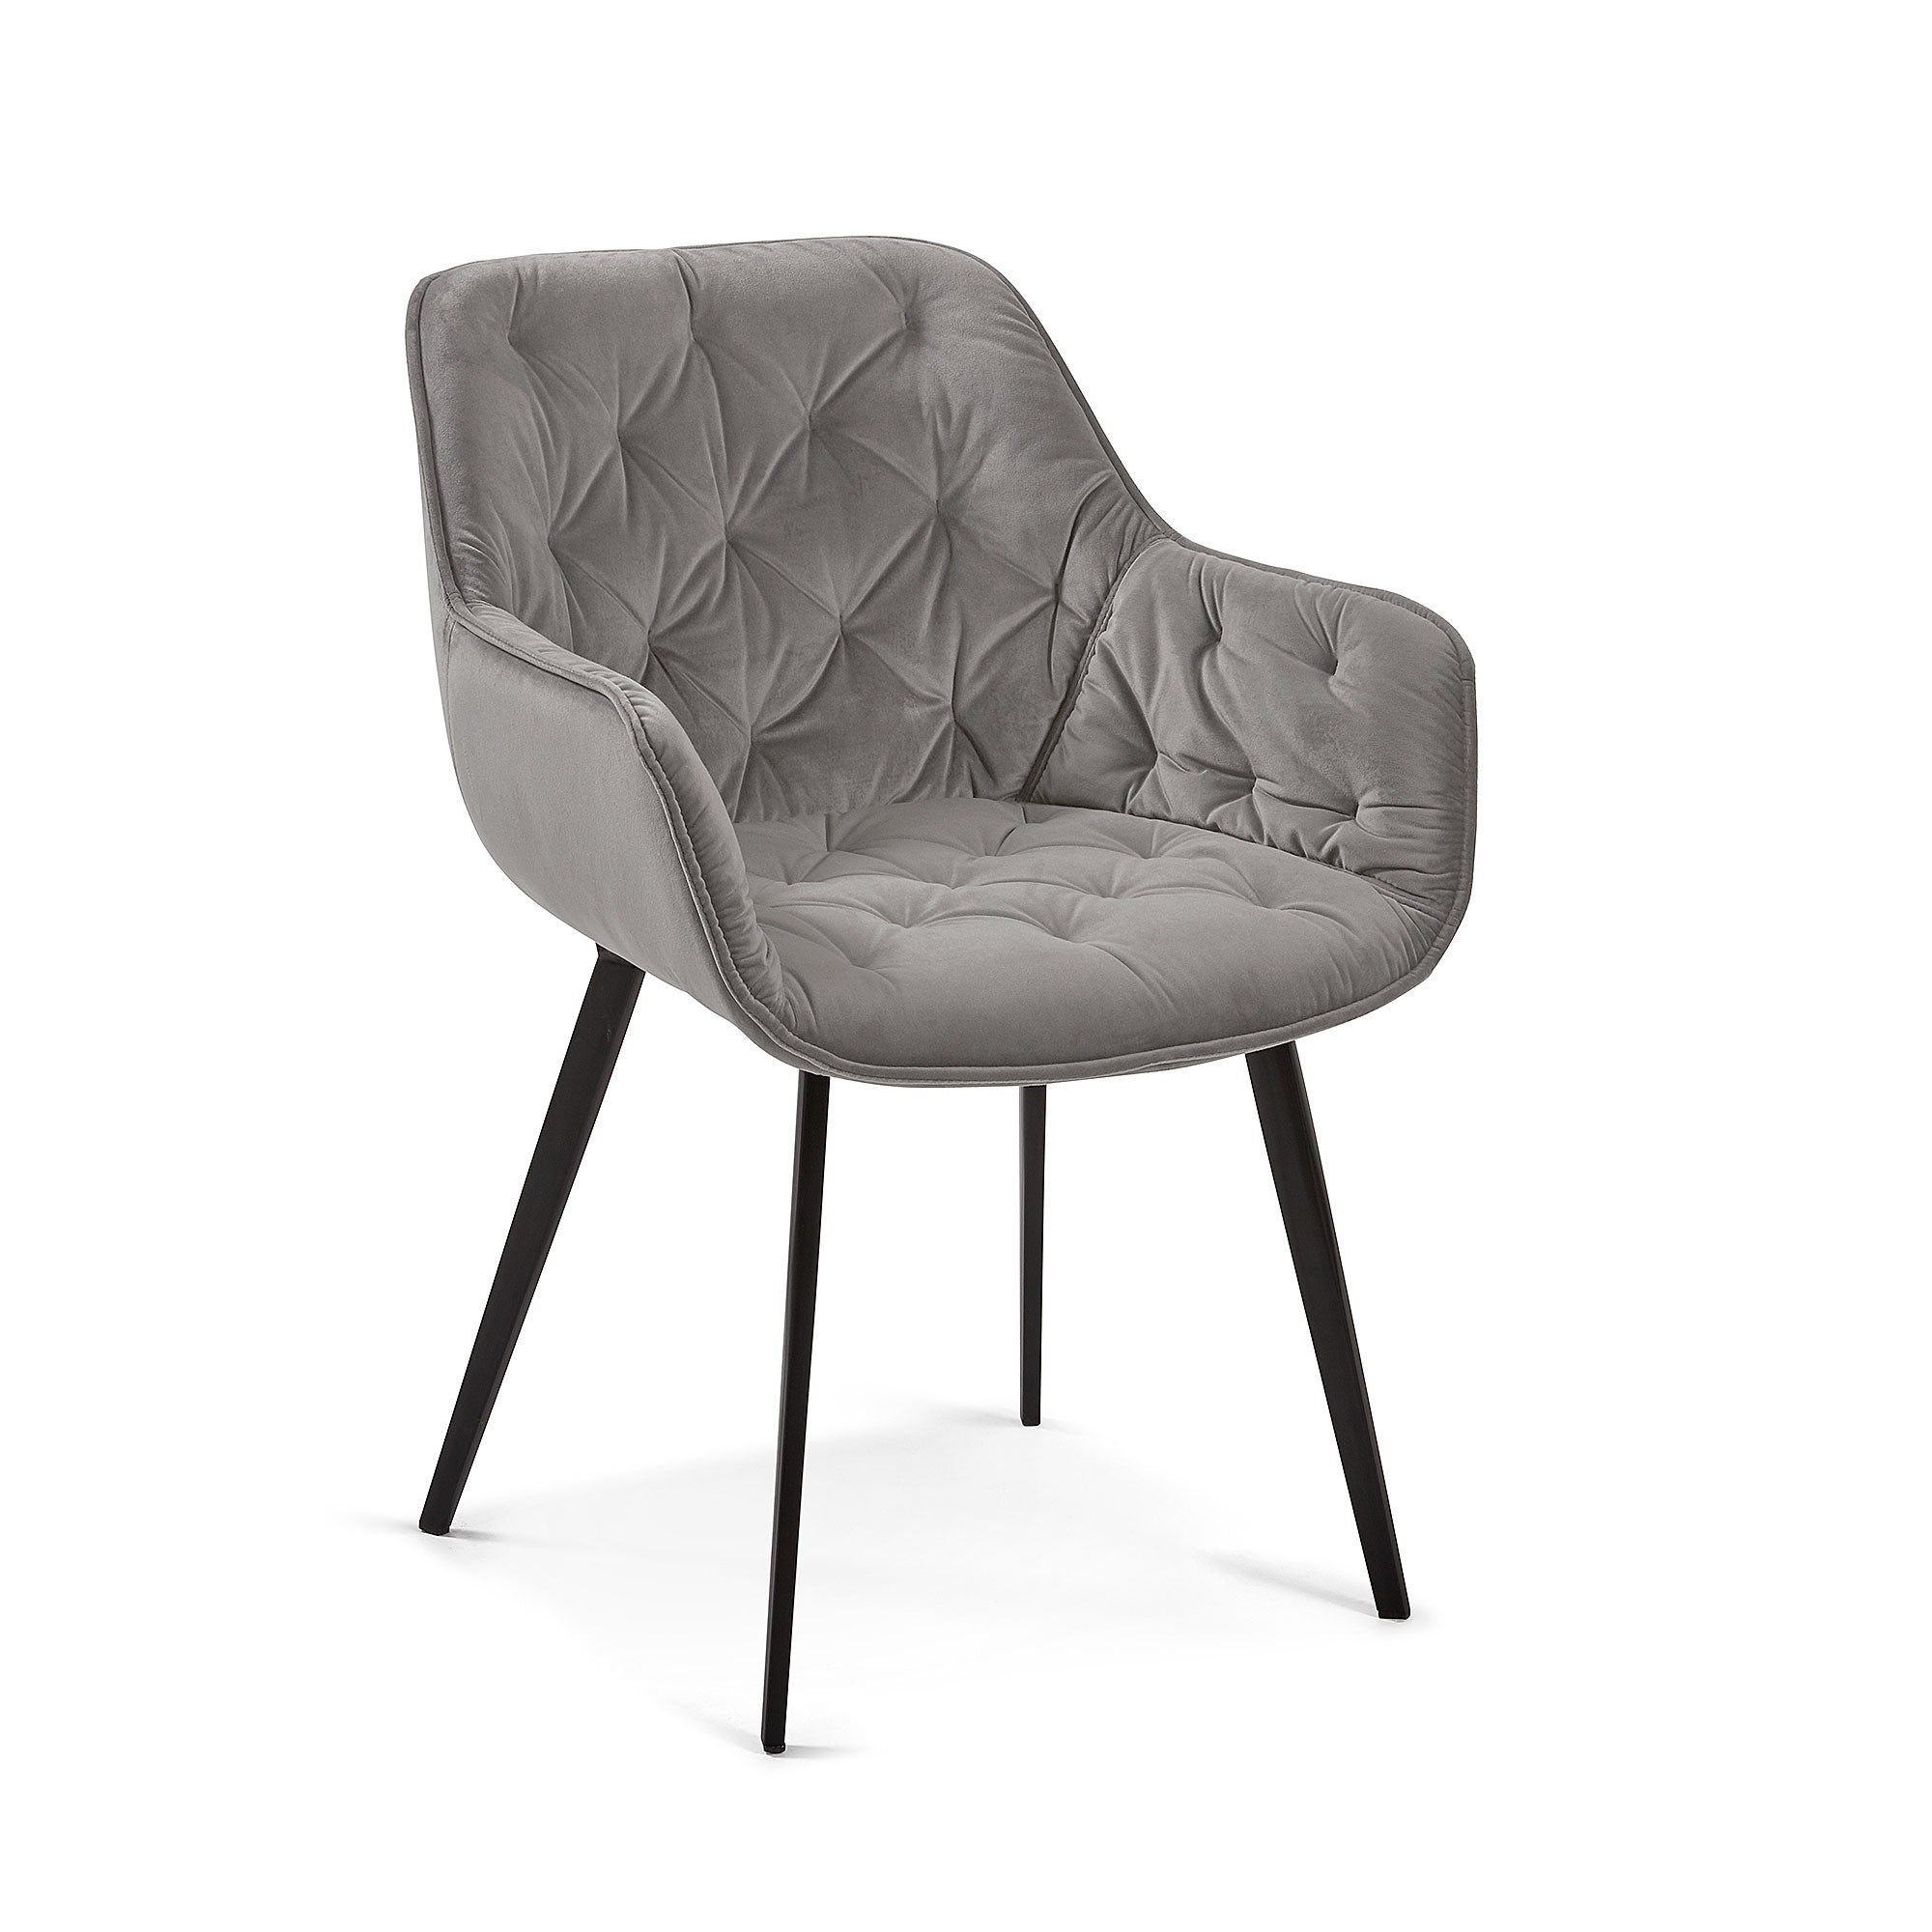 Mulder Chair Grey Velvet, Dining Chair - Home-Buy Interiors